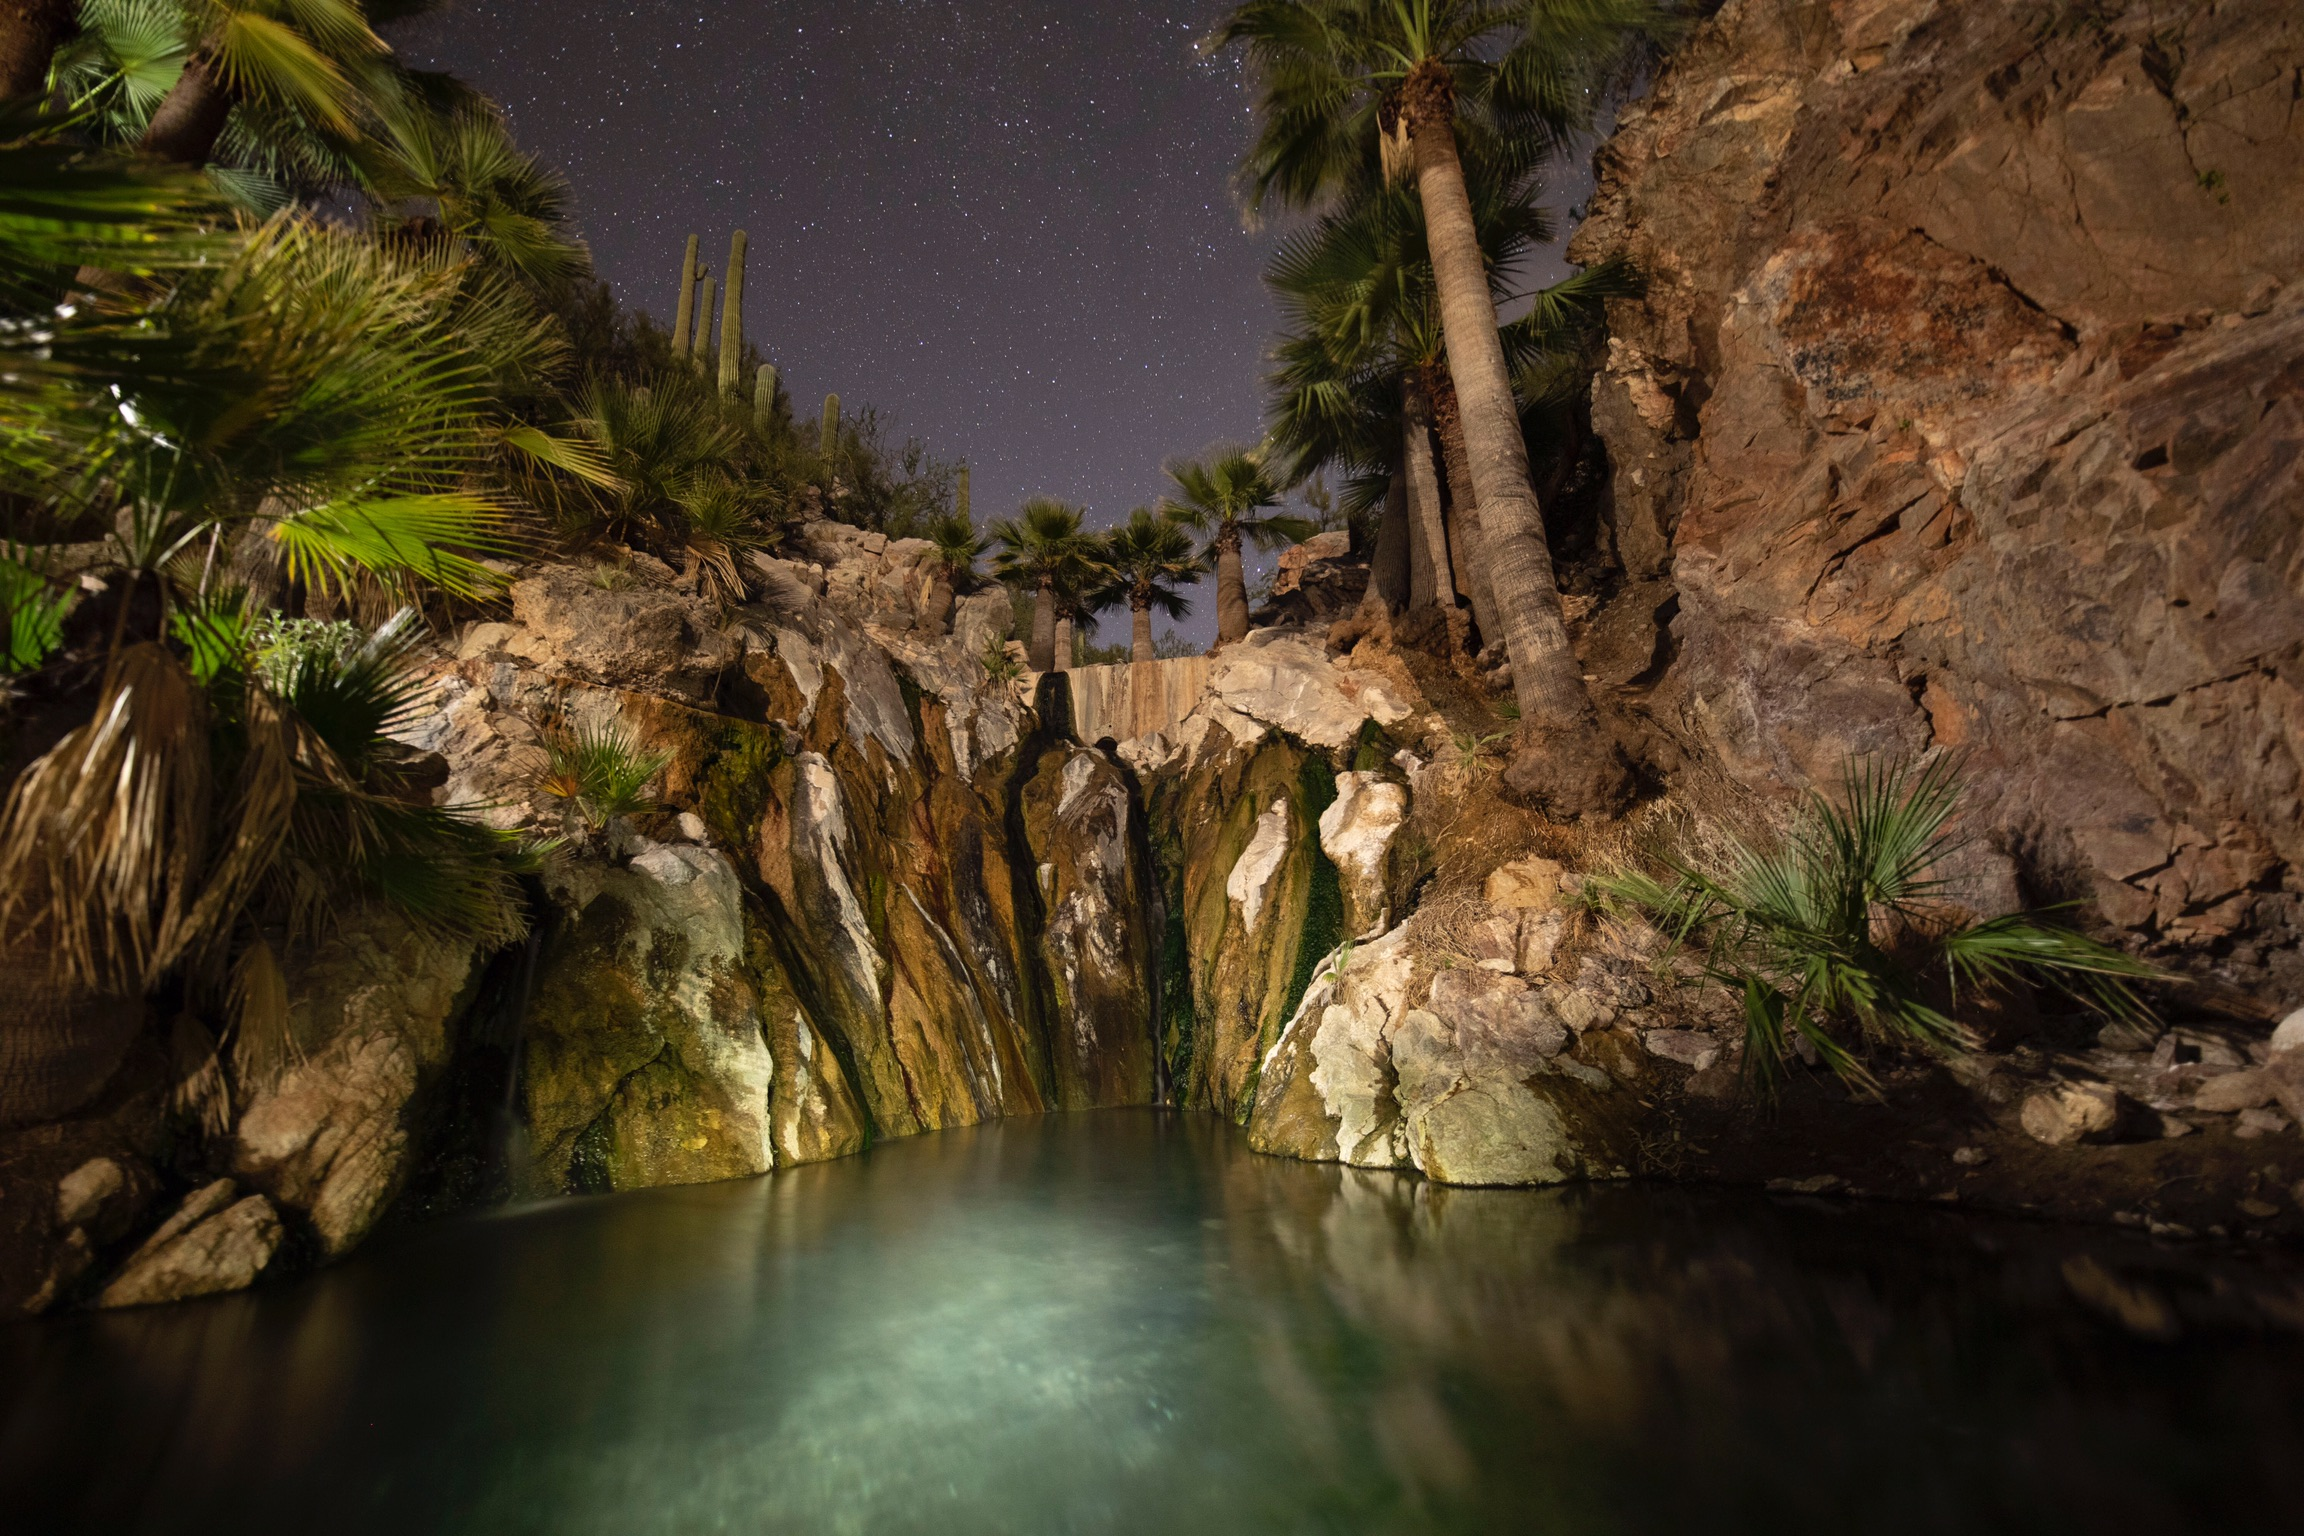 Night at Castle Hot Springs, photographed by Robert Pflumm. Lit hot springs so you can relax day and night.